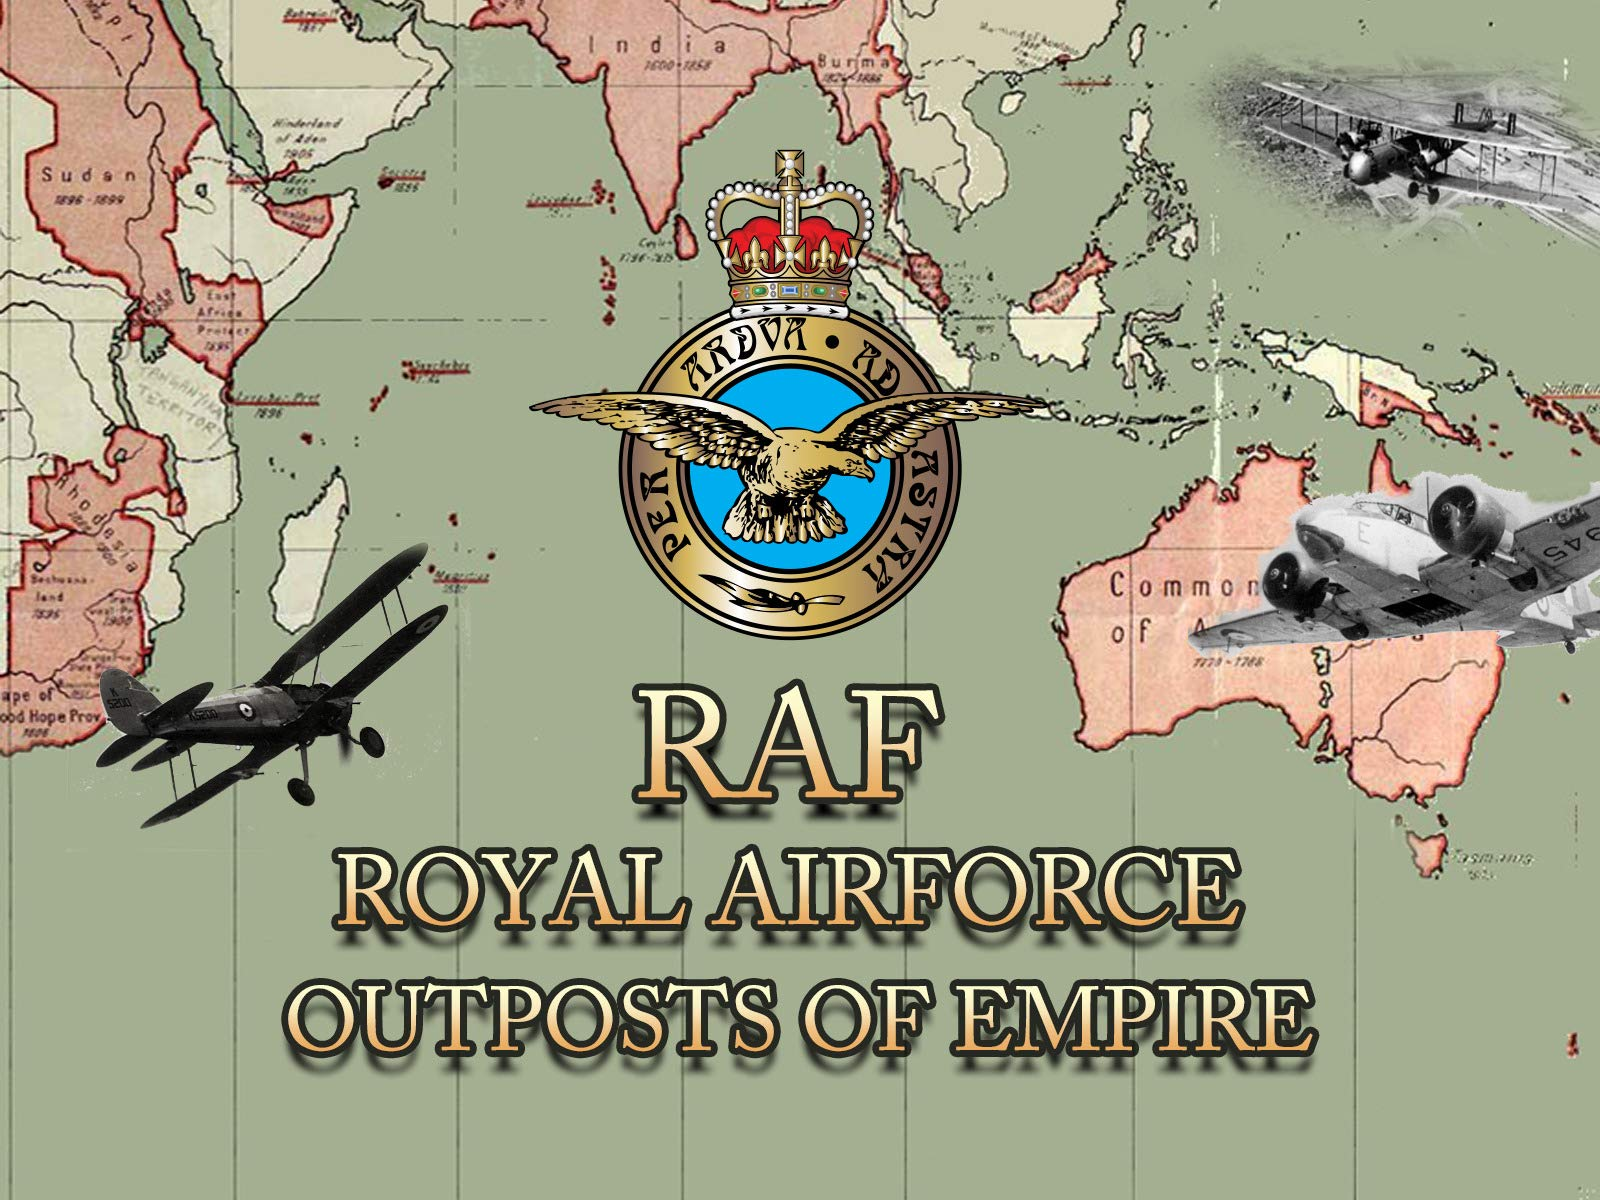 RAF - Royal Air Force - Season 1